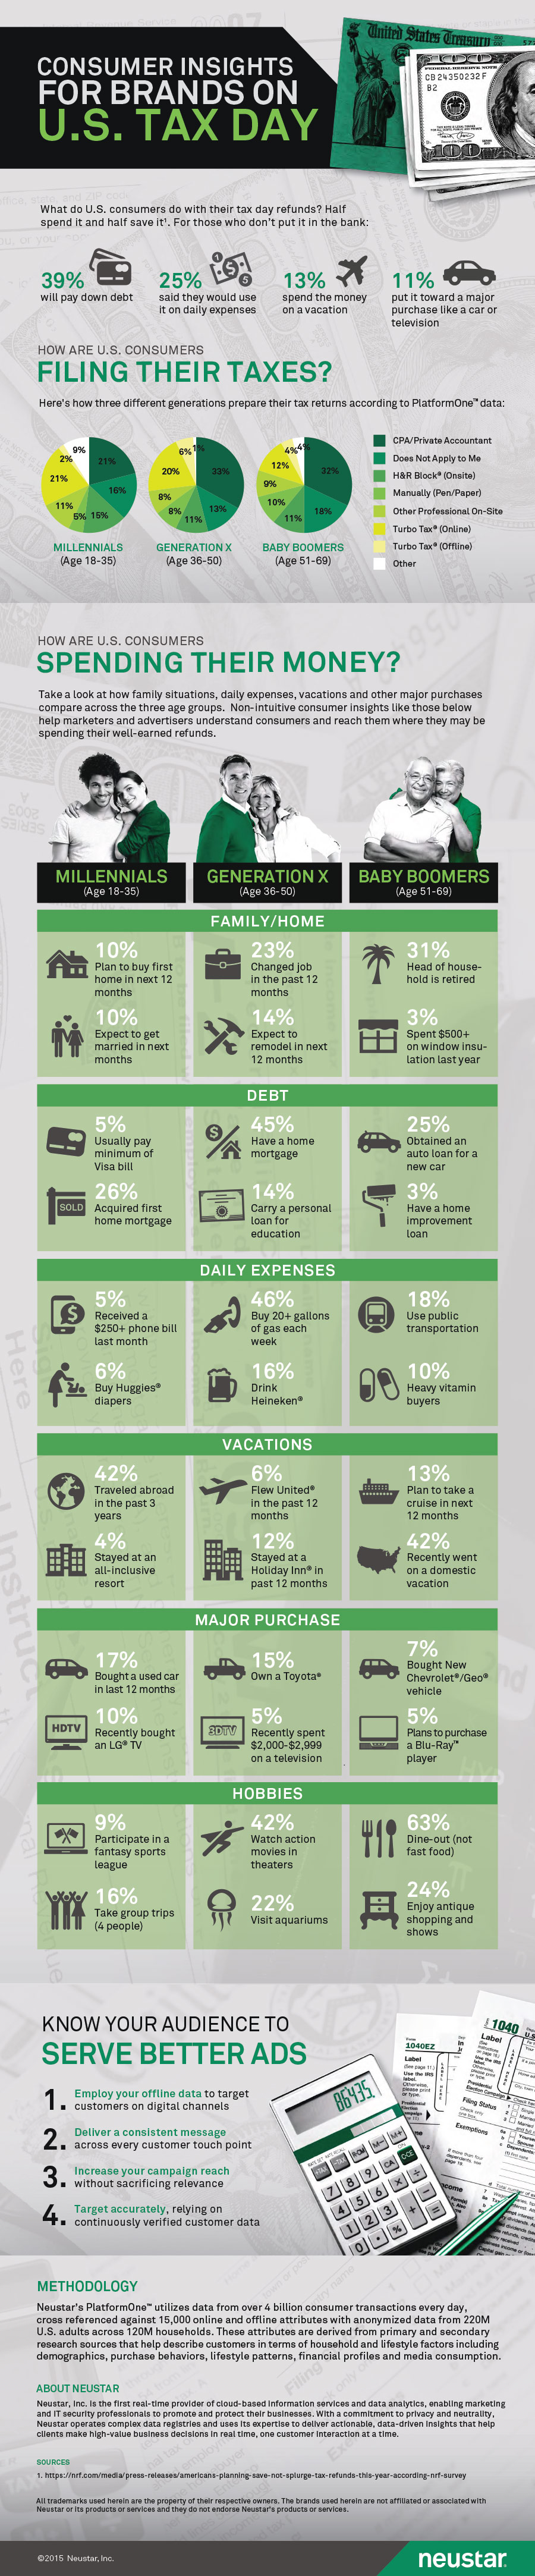 Consumer Brands and Audience Targeting Infographic